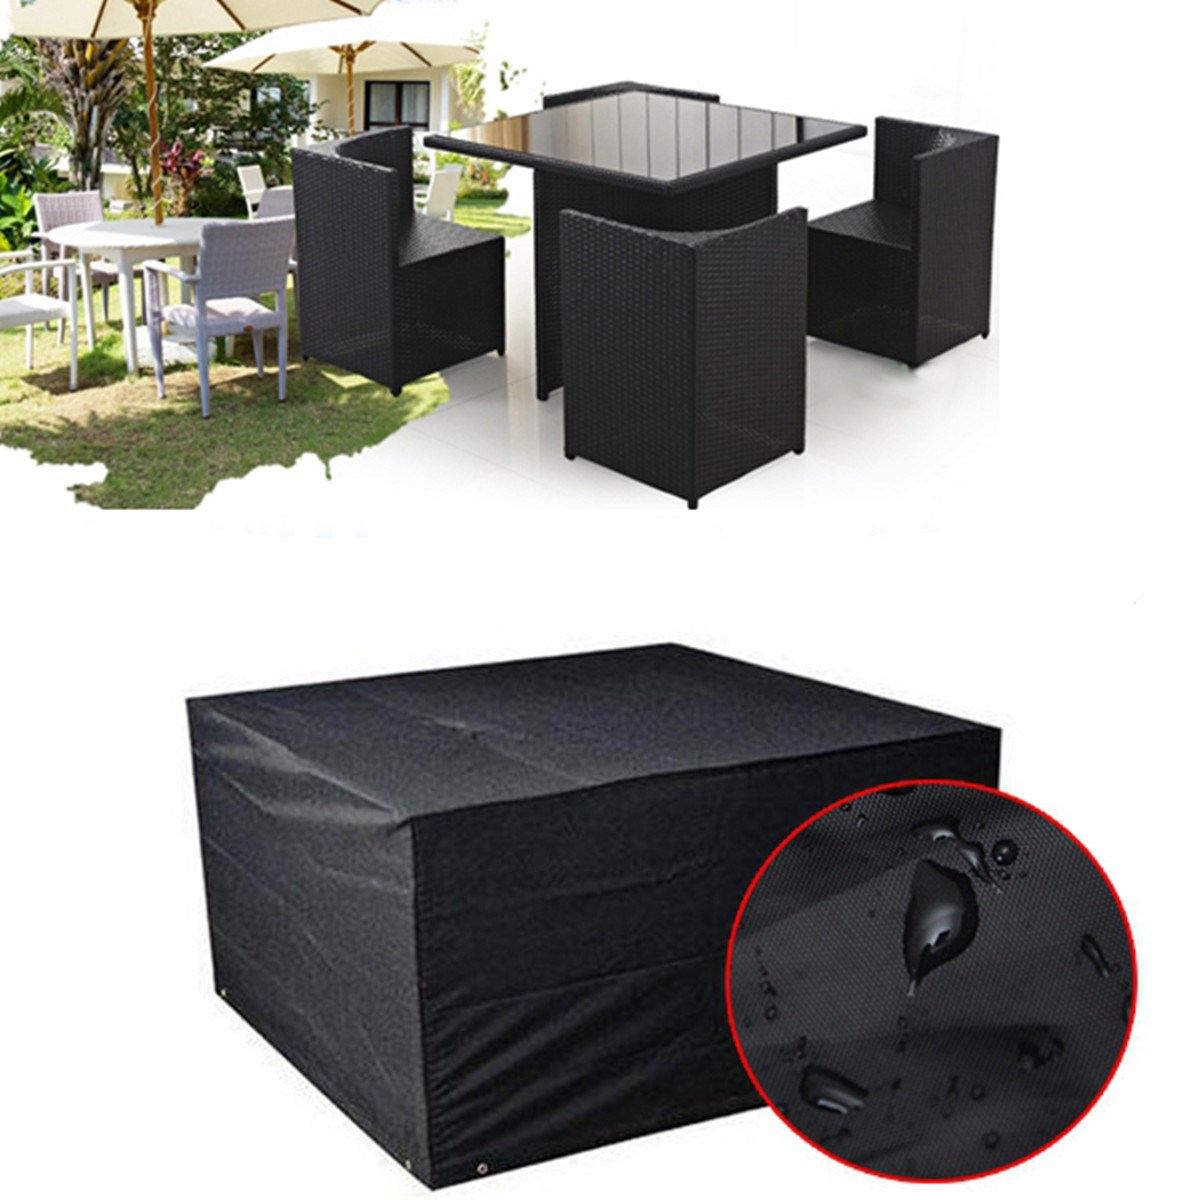 Black Waterproof Outdoor Furniture Cover For Garden Patio Table Chair Setting 4 Seater Furniture Accessories(China (Mainland))